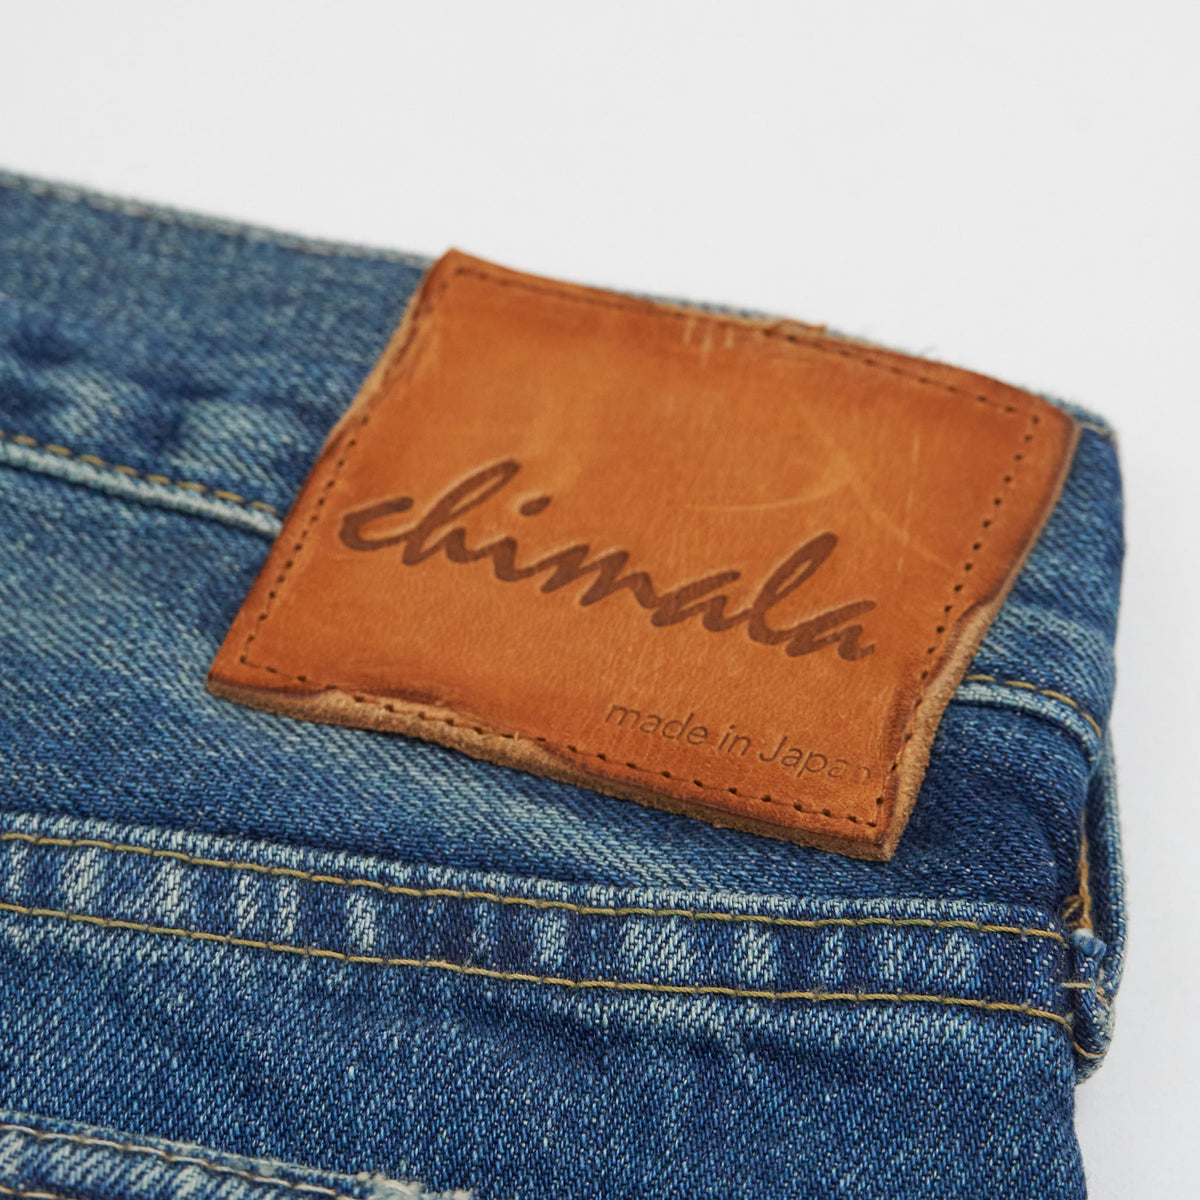 Chimala Straight Leg Unisex Japan Denim Jeans